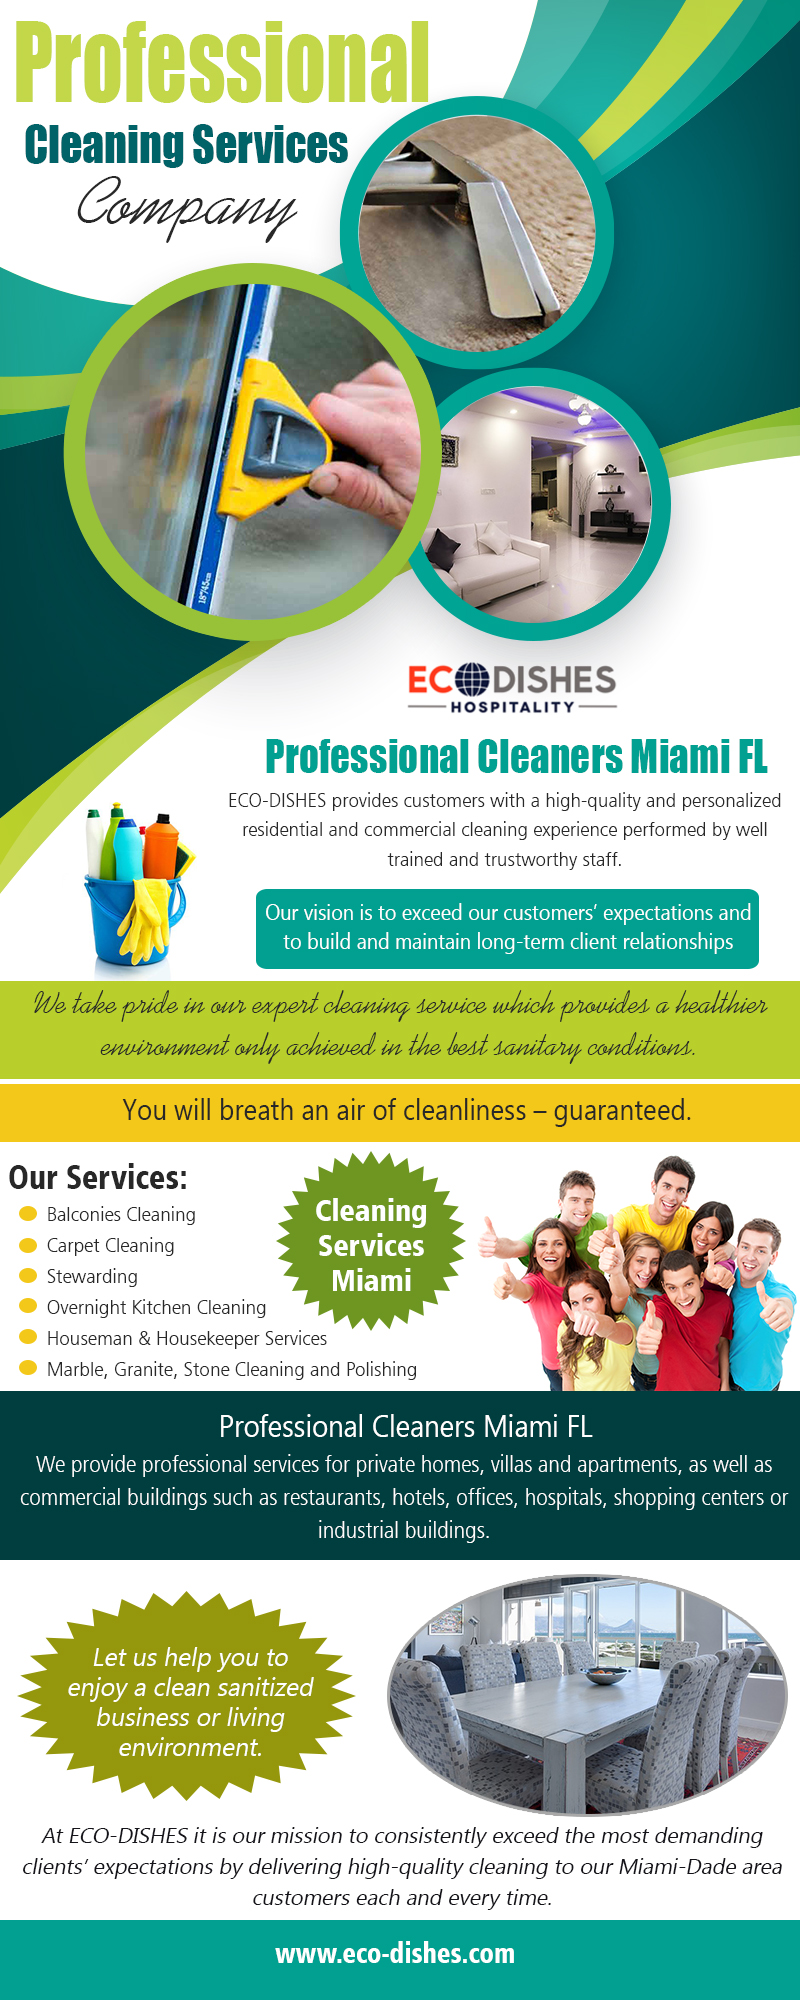 Professional Cleaning Service Company | 3055466638 | eco-dishes.com